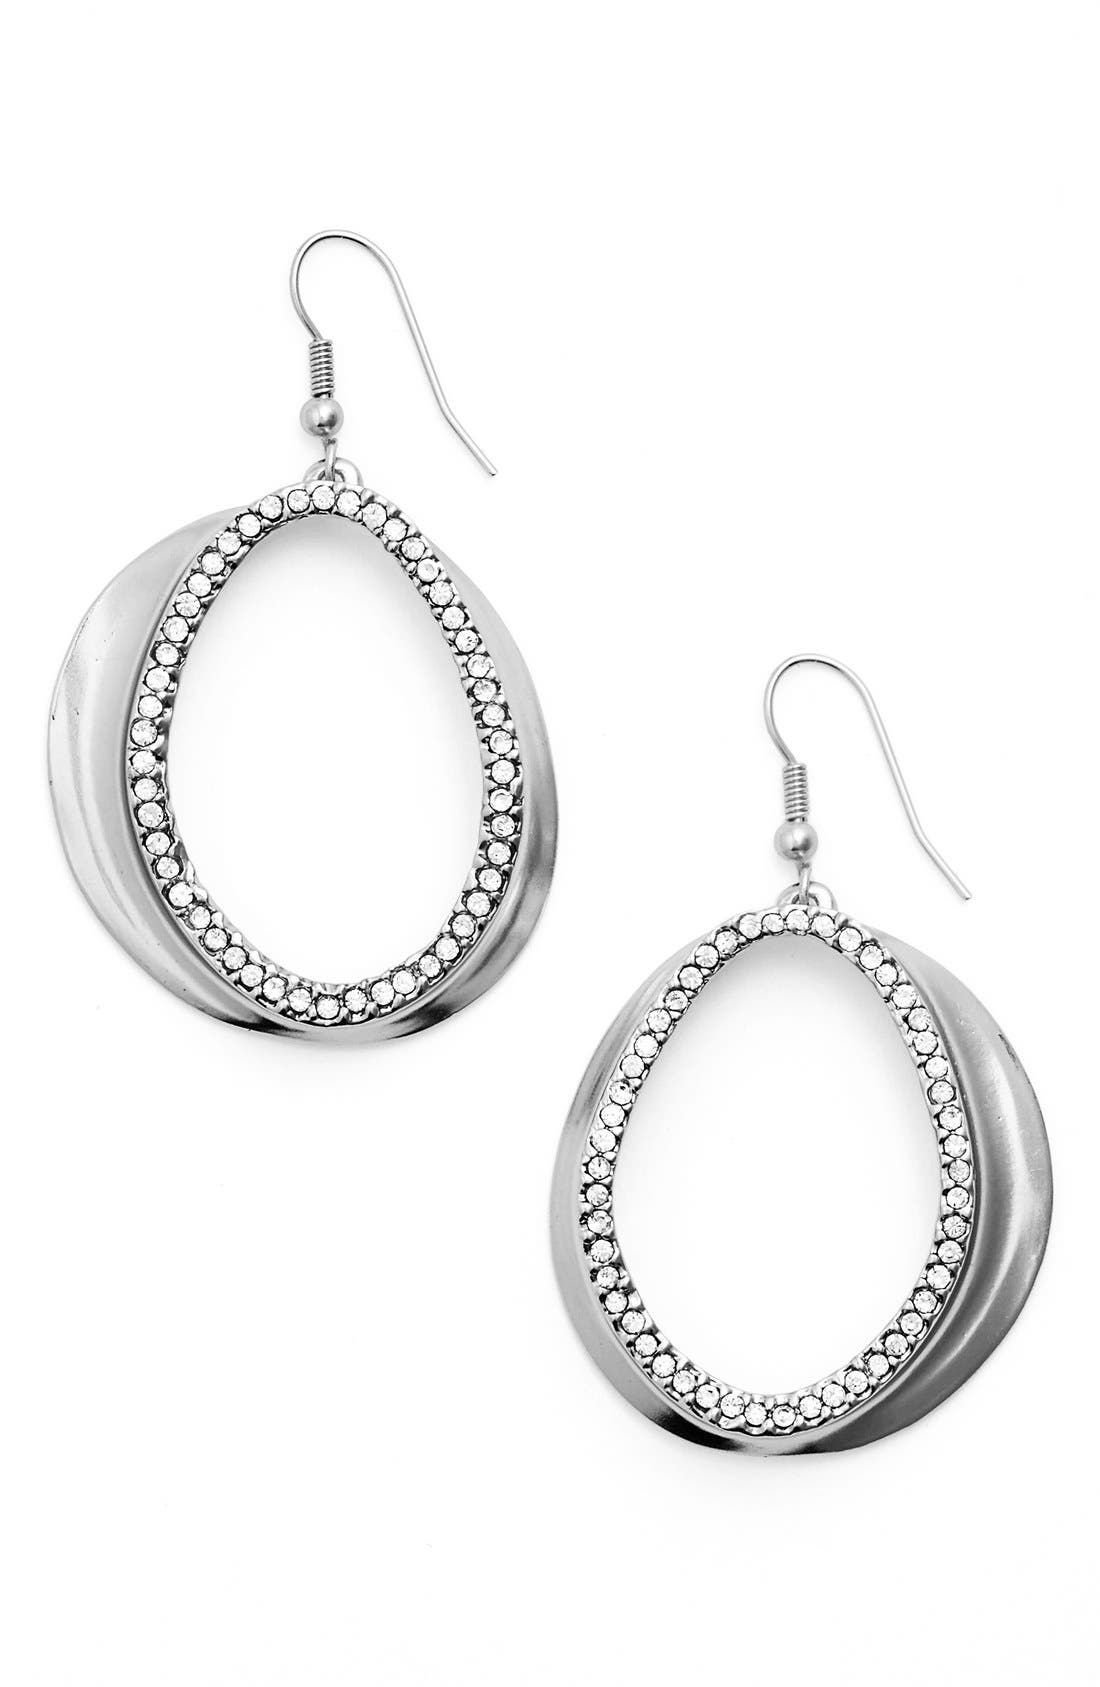 KARINE SULTAN Crystal Front Hoop Earrings